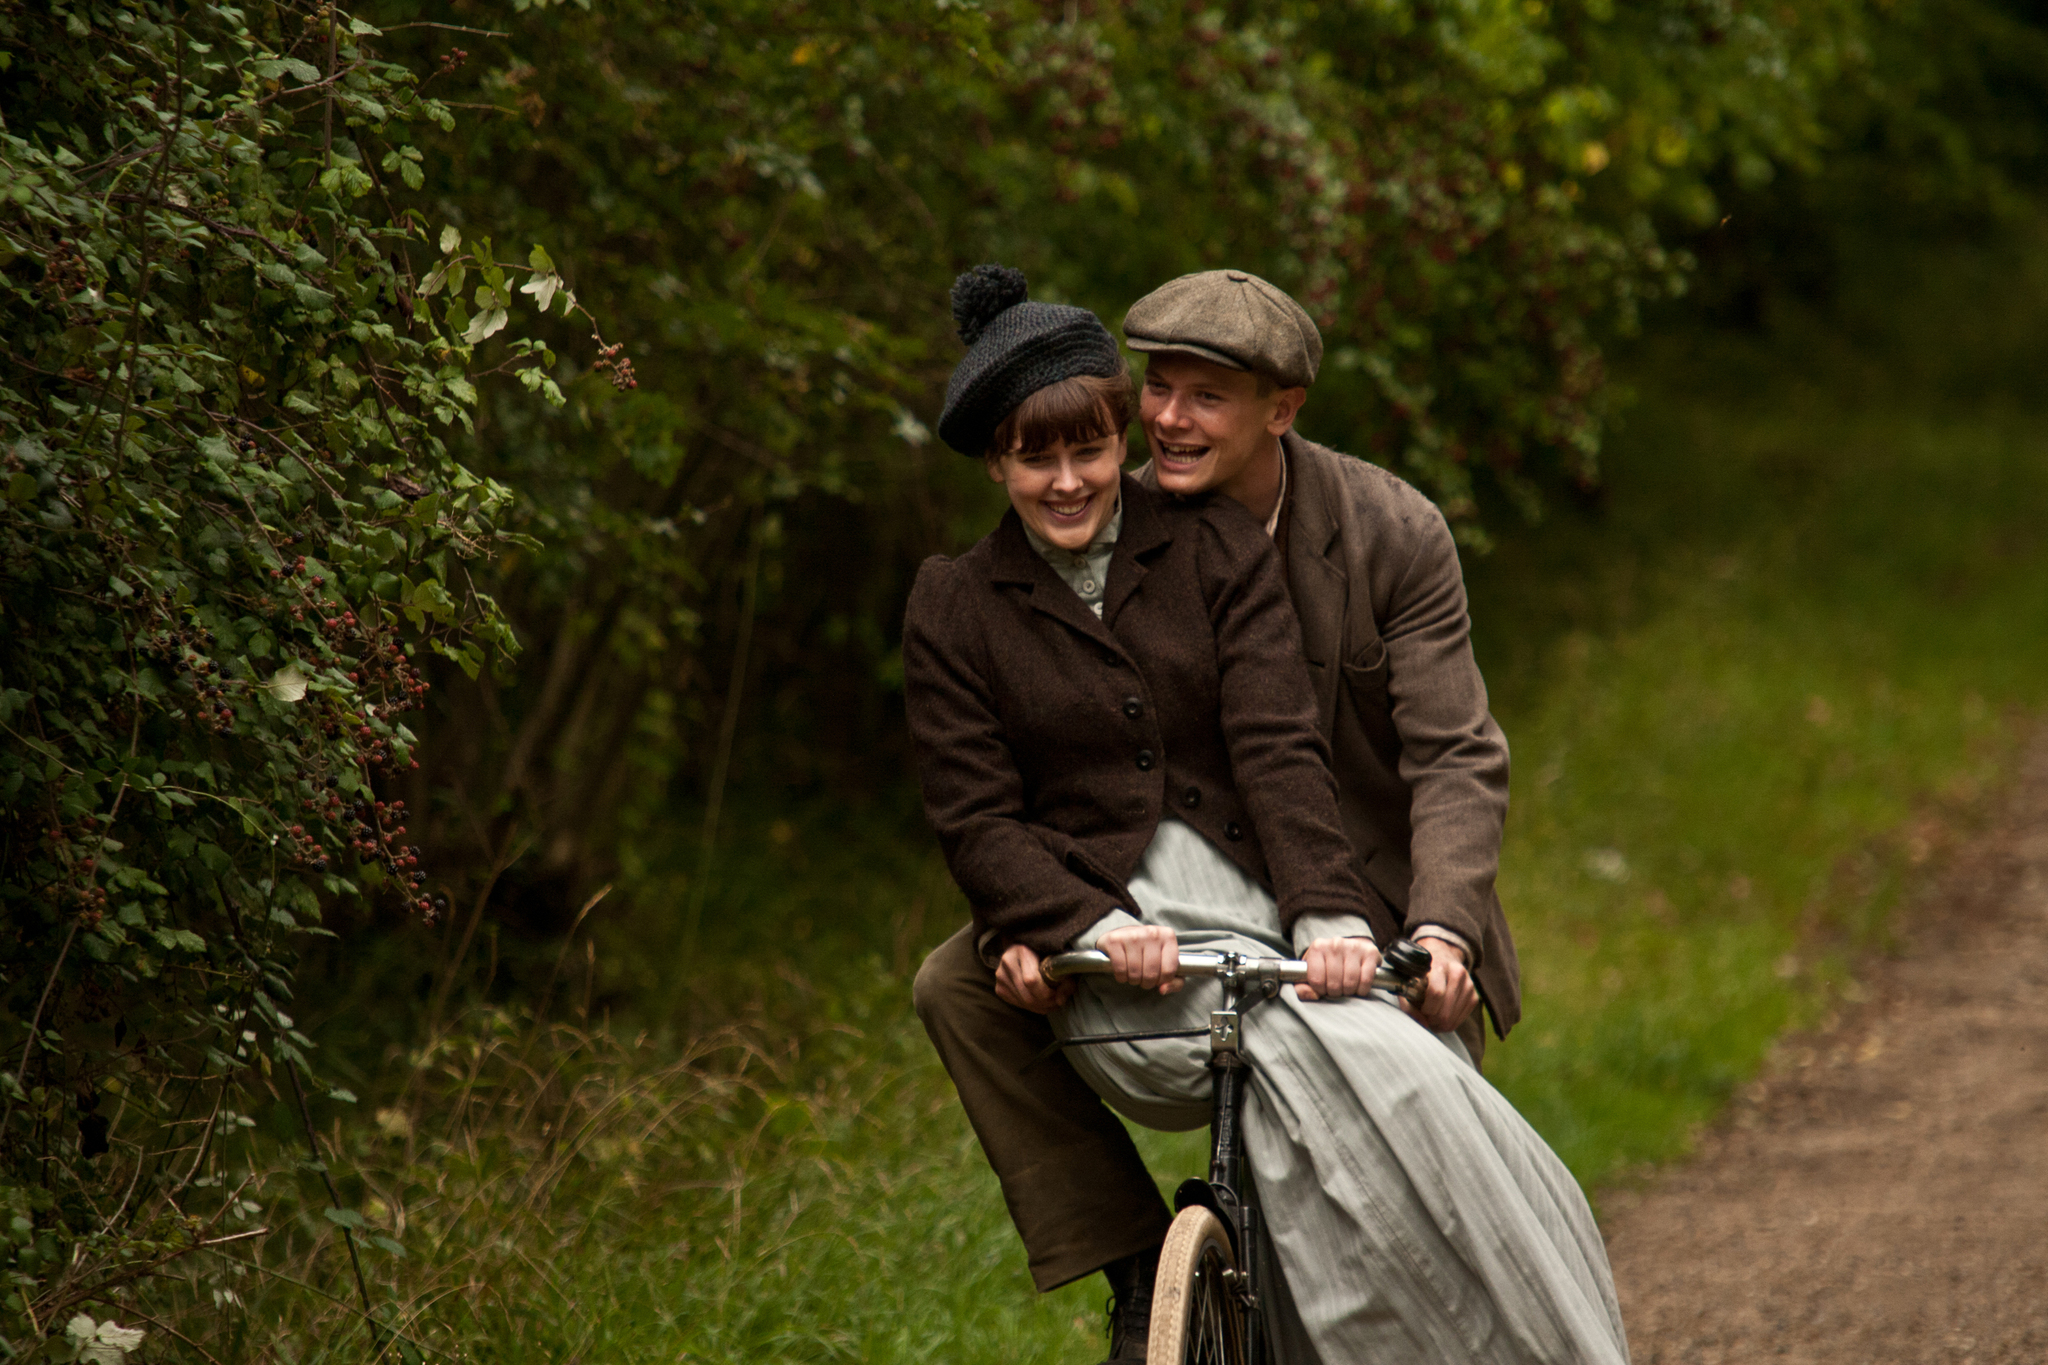 Still of Jack O'Connell and Alexandra Roach in Private Peaceful (2012) photo #540474